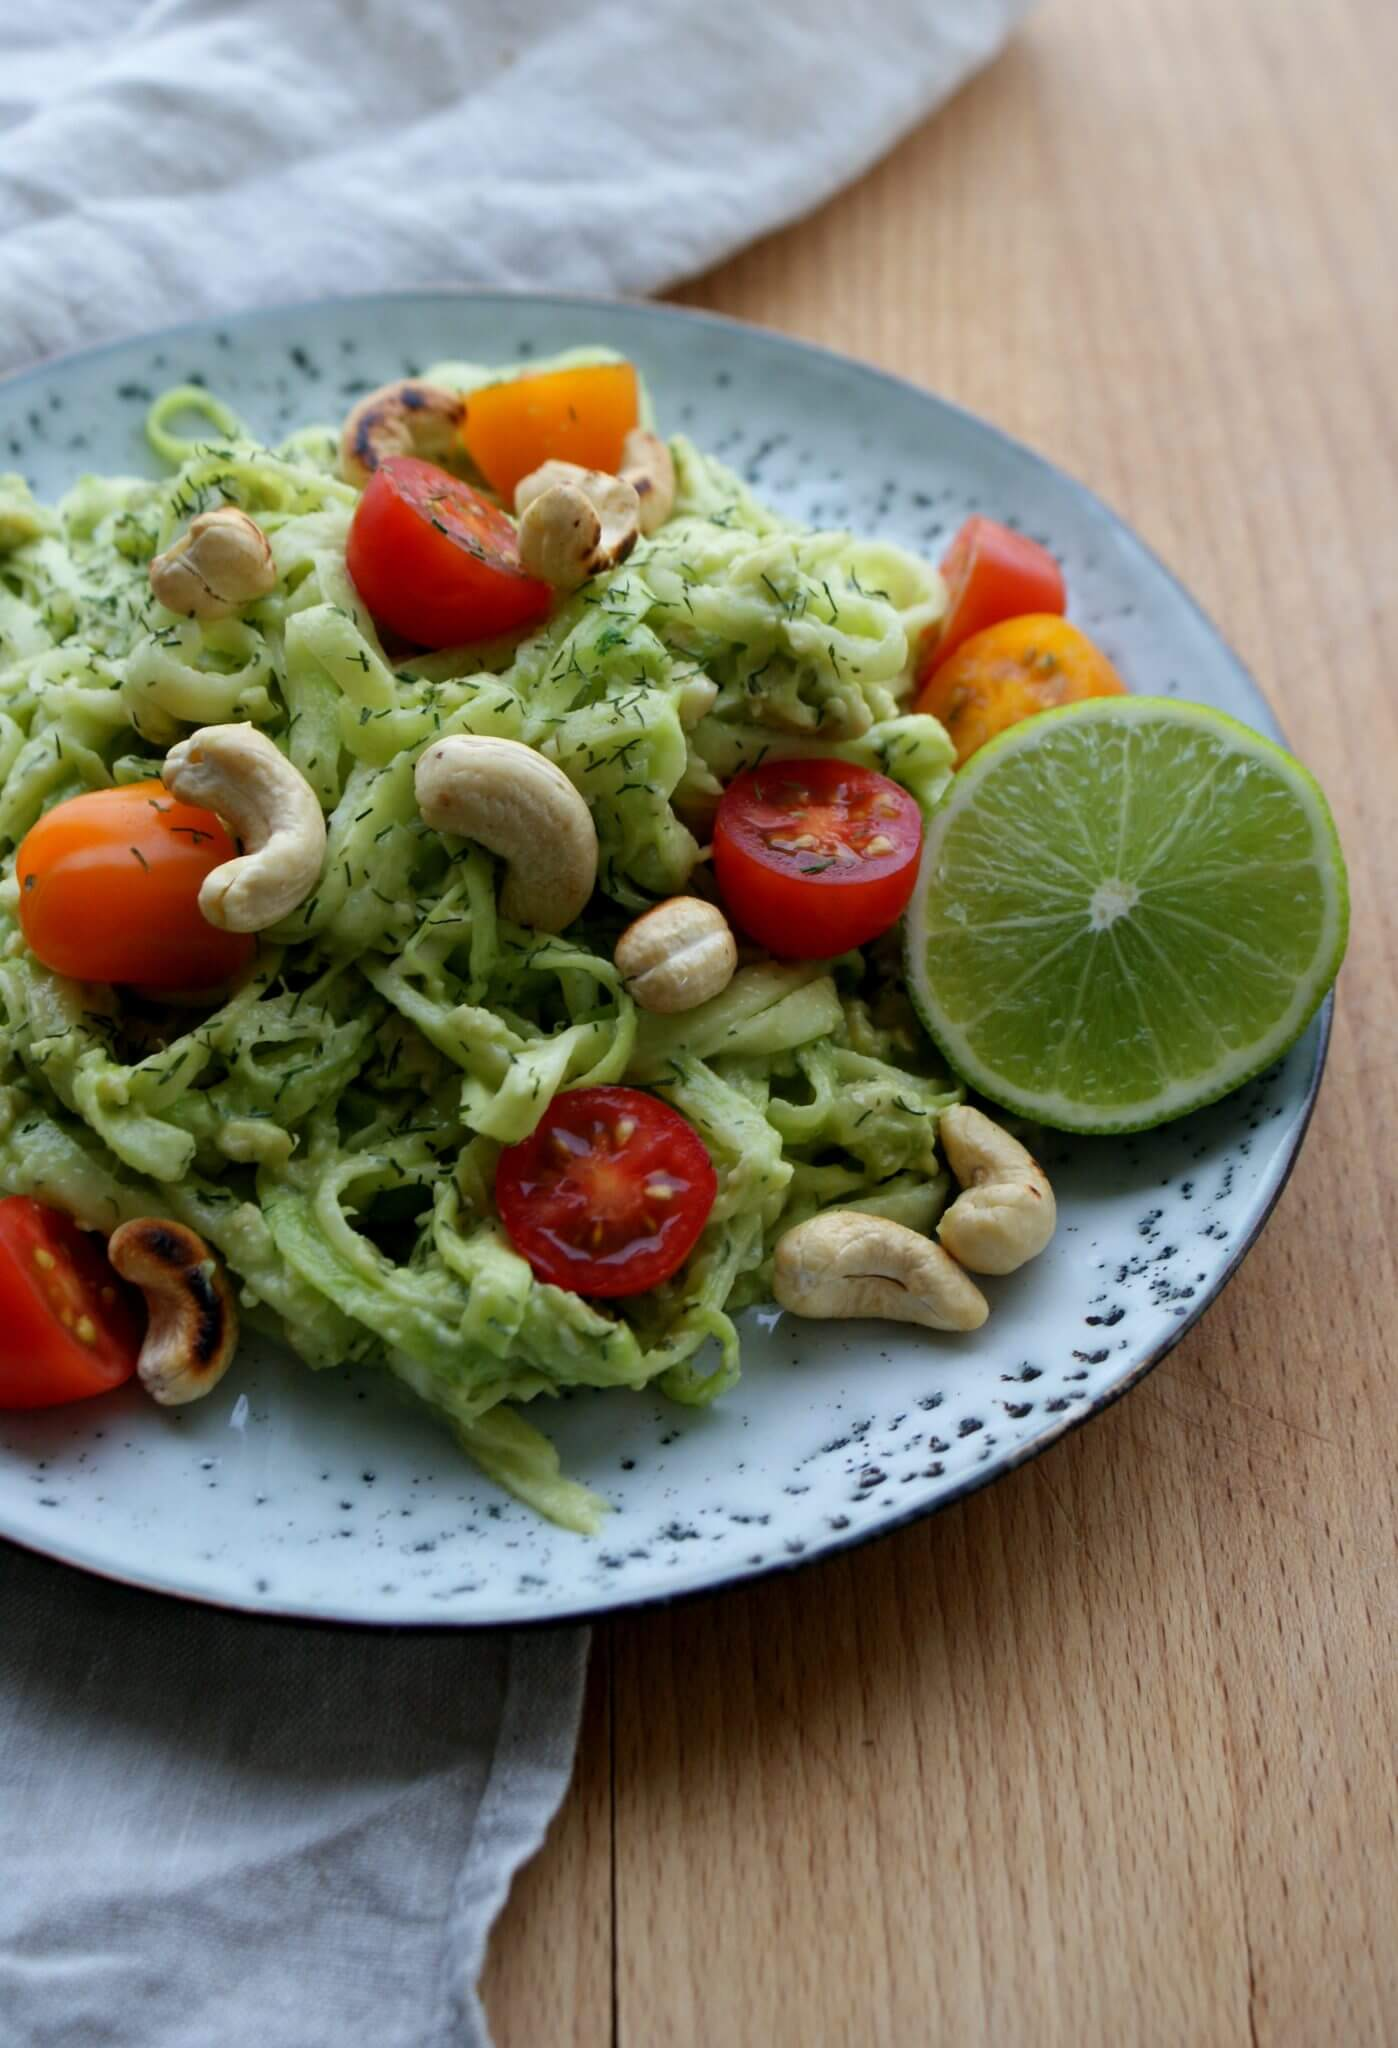 Courgetti met dille en avocado